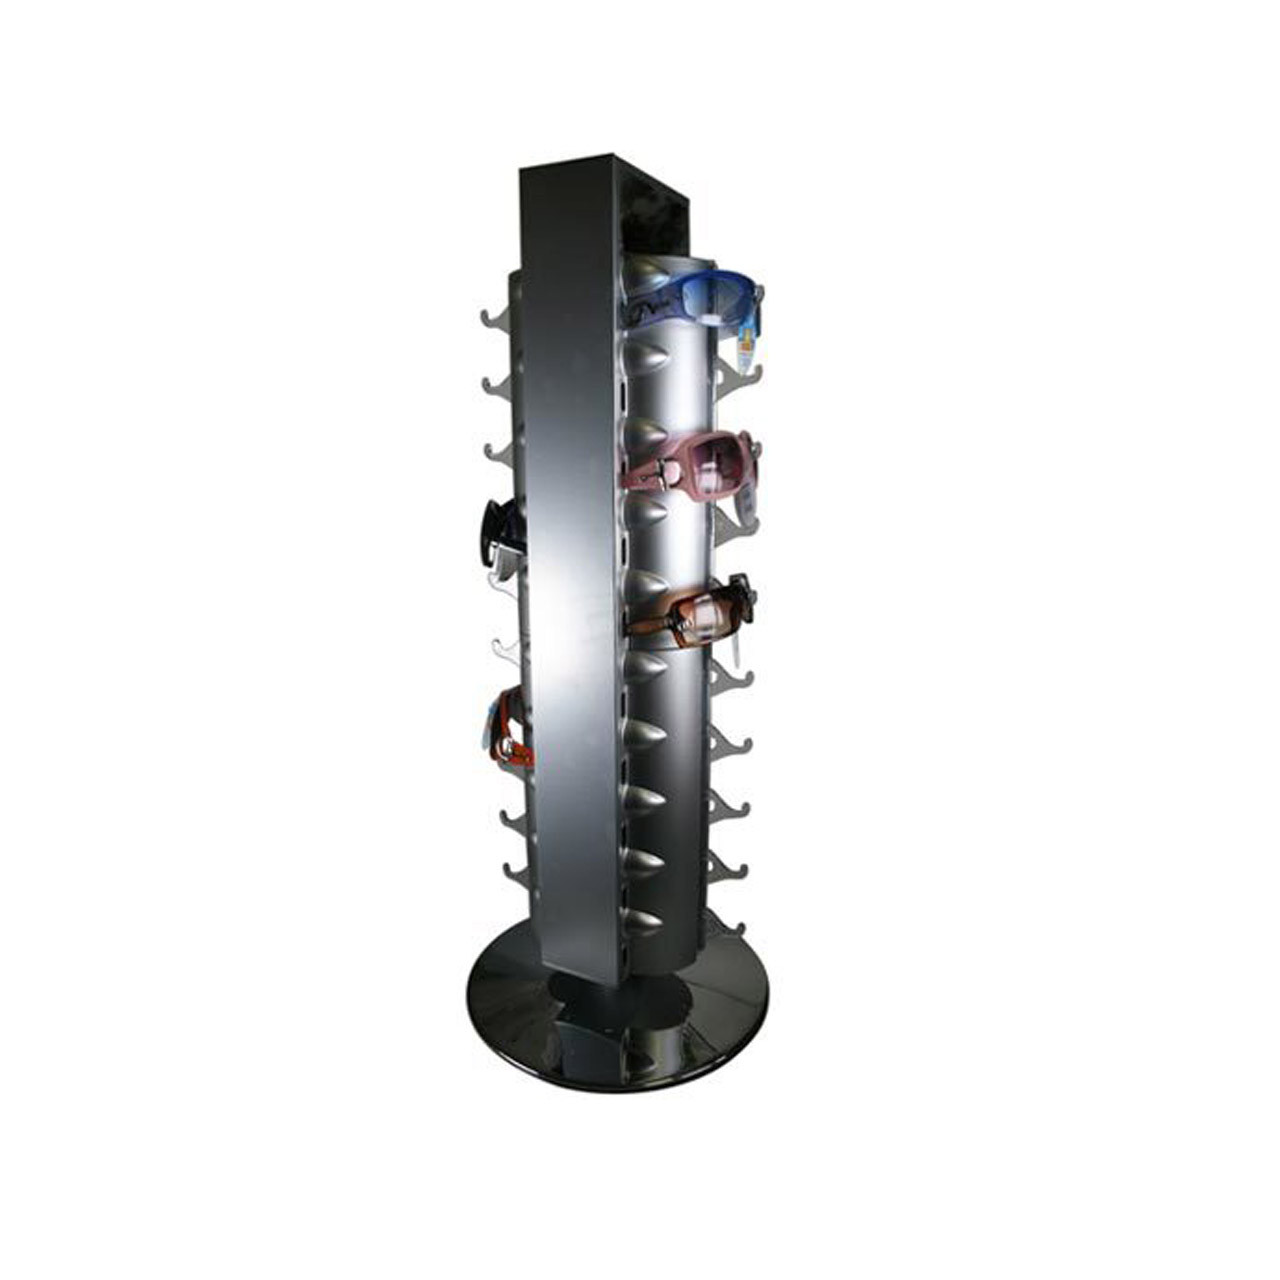 Rotating Counter-Top Sunglass Display   Holds 20 Pair Sunglasses